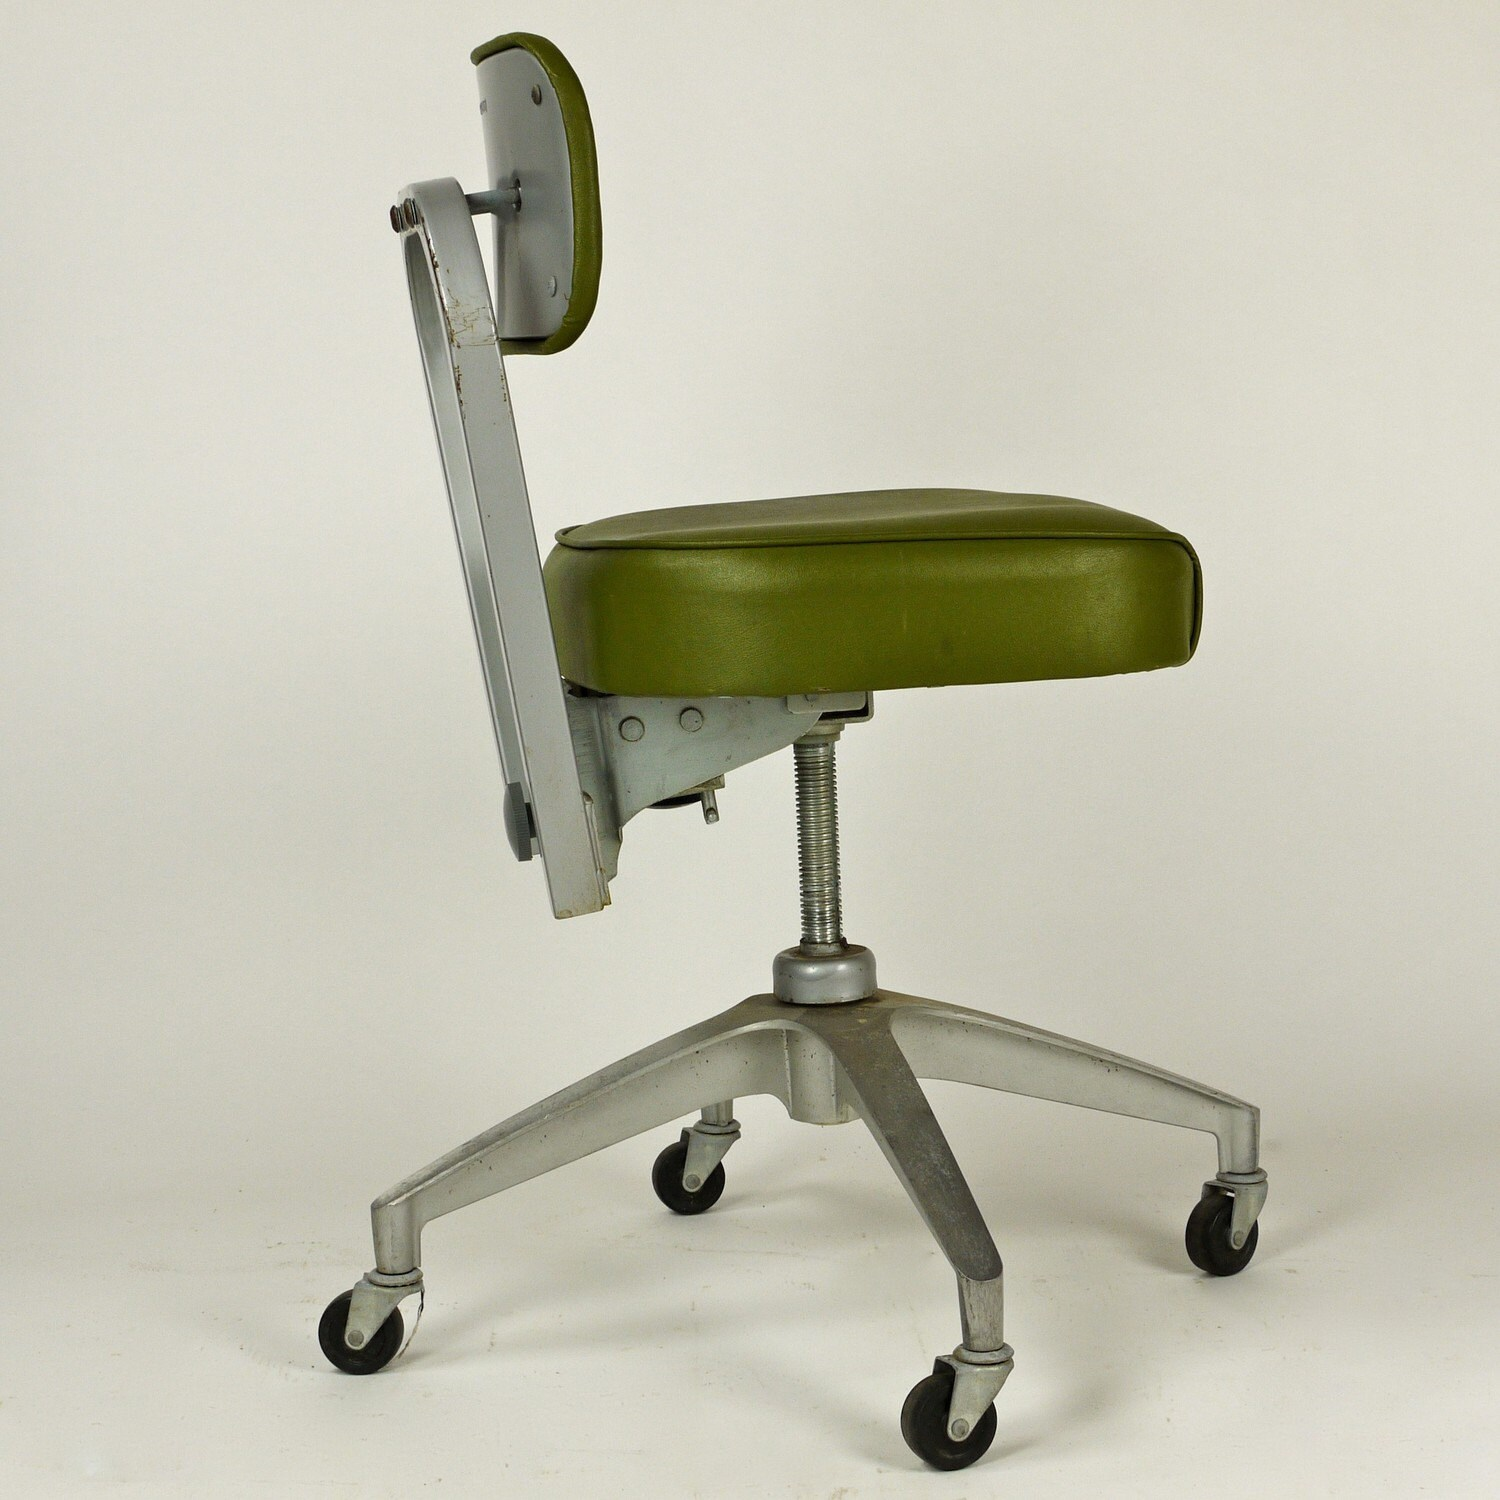 Vintage 1950s Cole Steel Swivel Metal Office Desk Chair